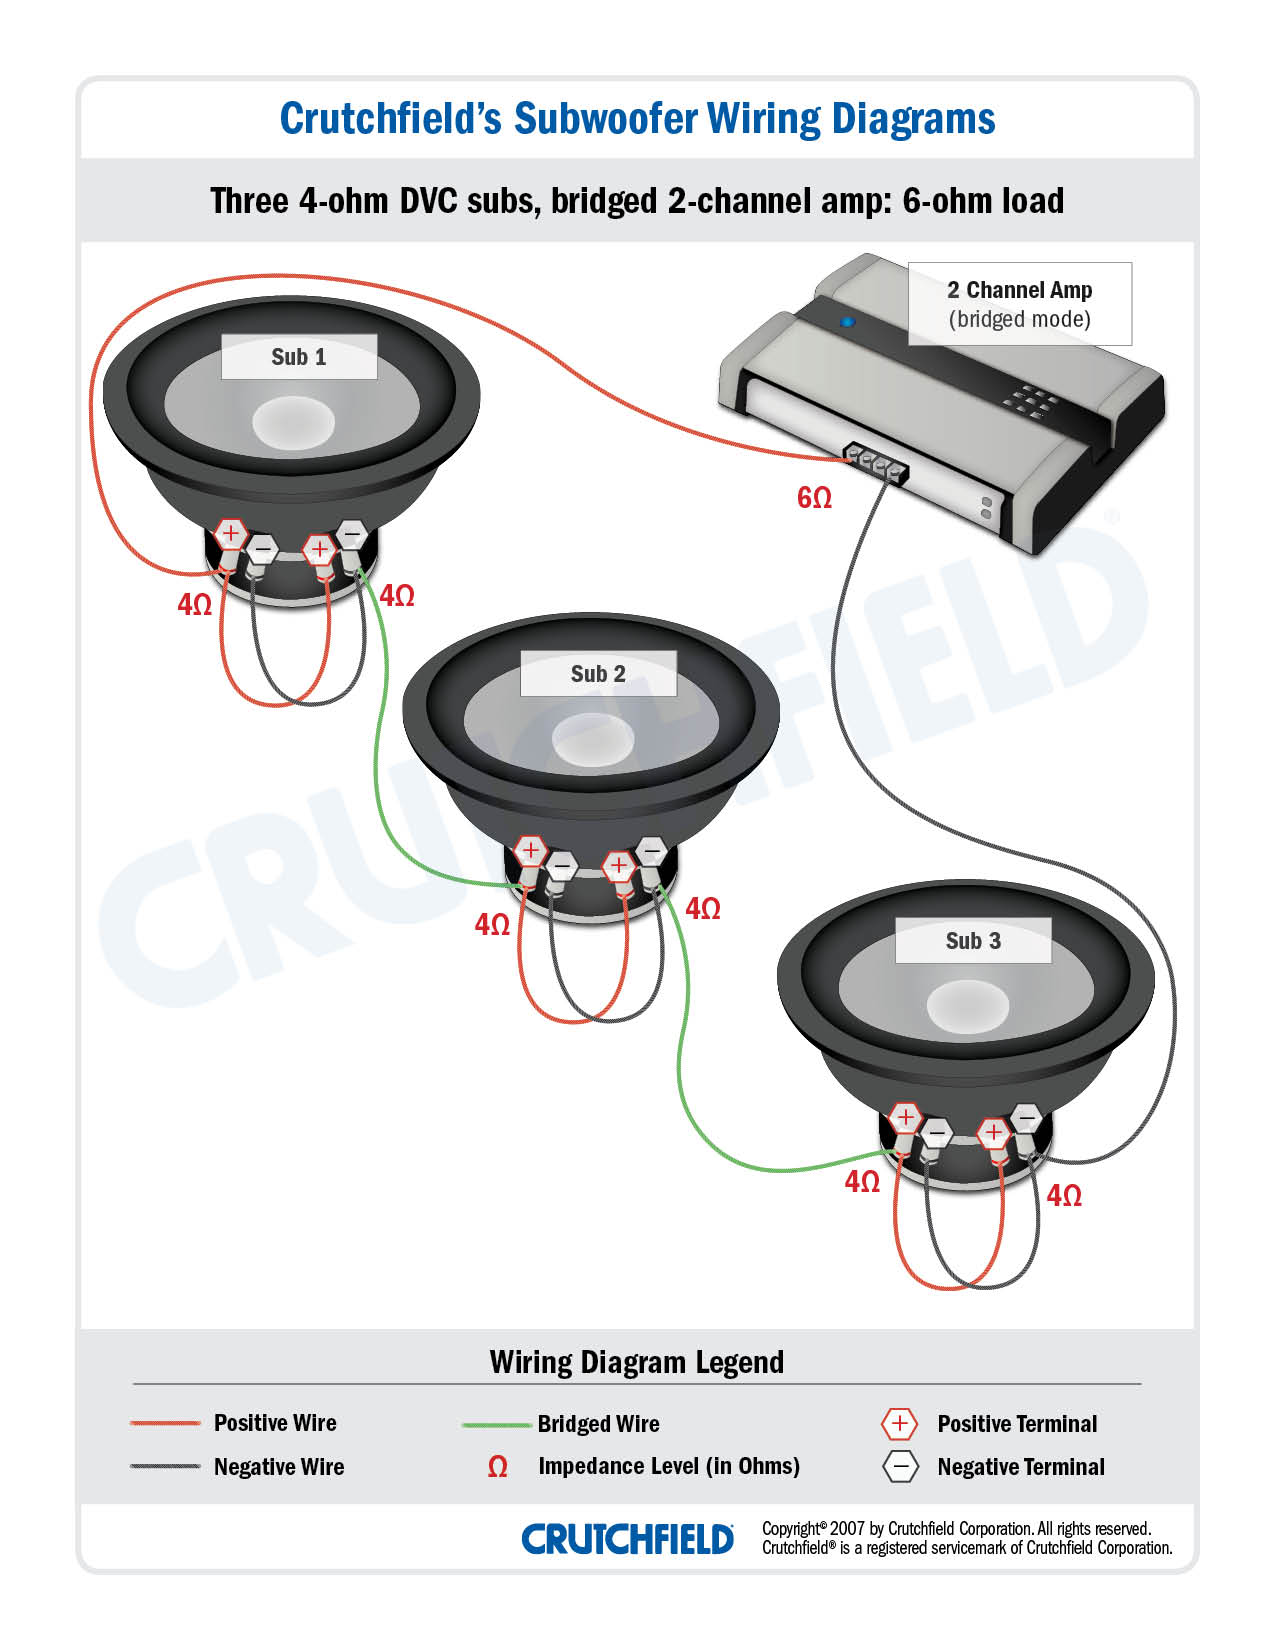 3 DVC 4 ohm 2 ch wiring subwoofers what's all this about ohms? dual 2 ohm wiring diagram at readyjetset.co